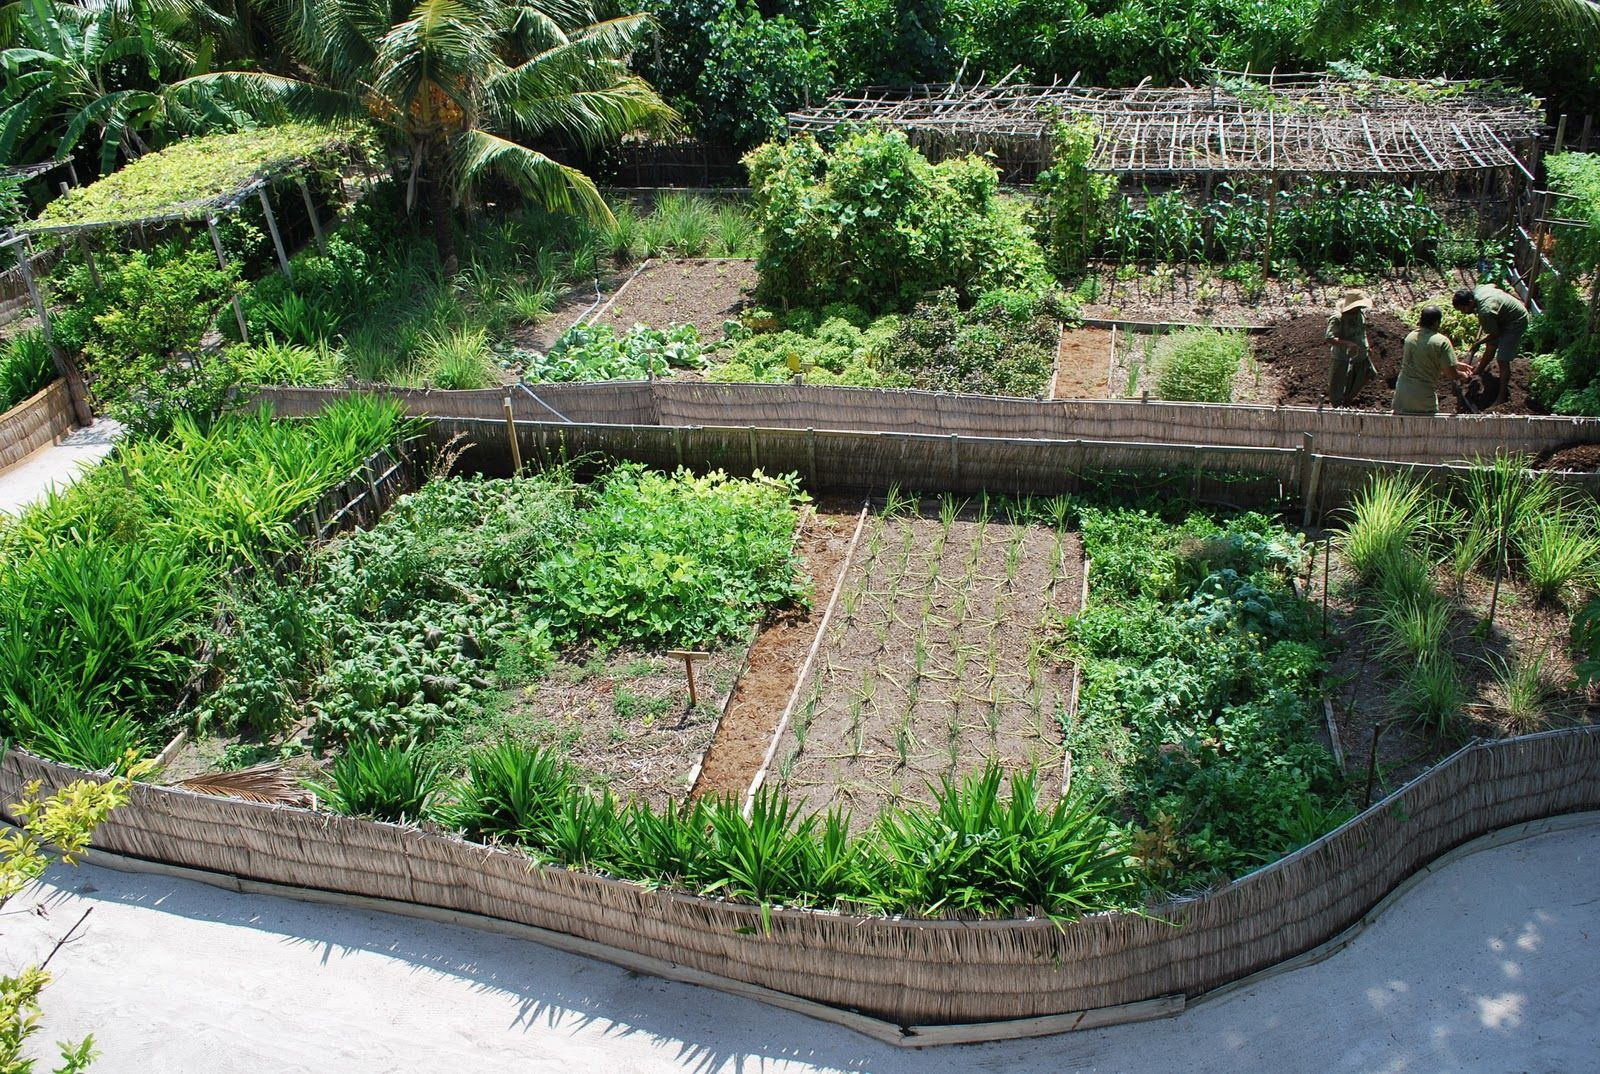 Garden design permaculture designs pinterest for In your garden designs